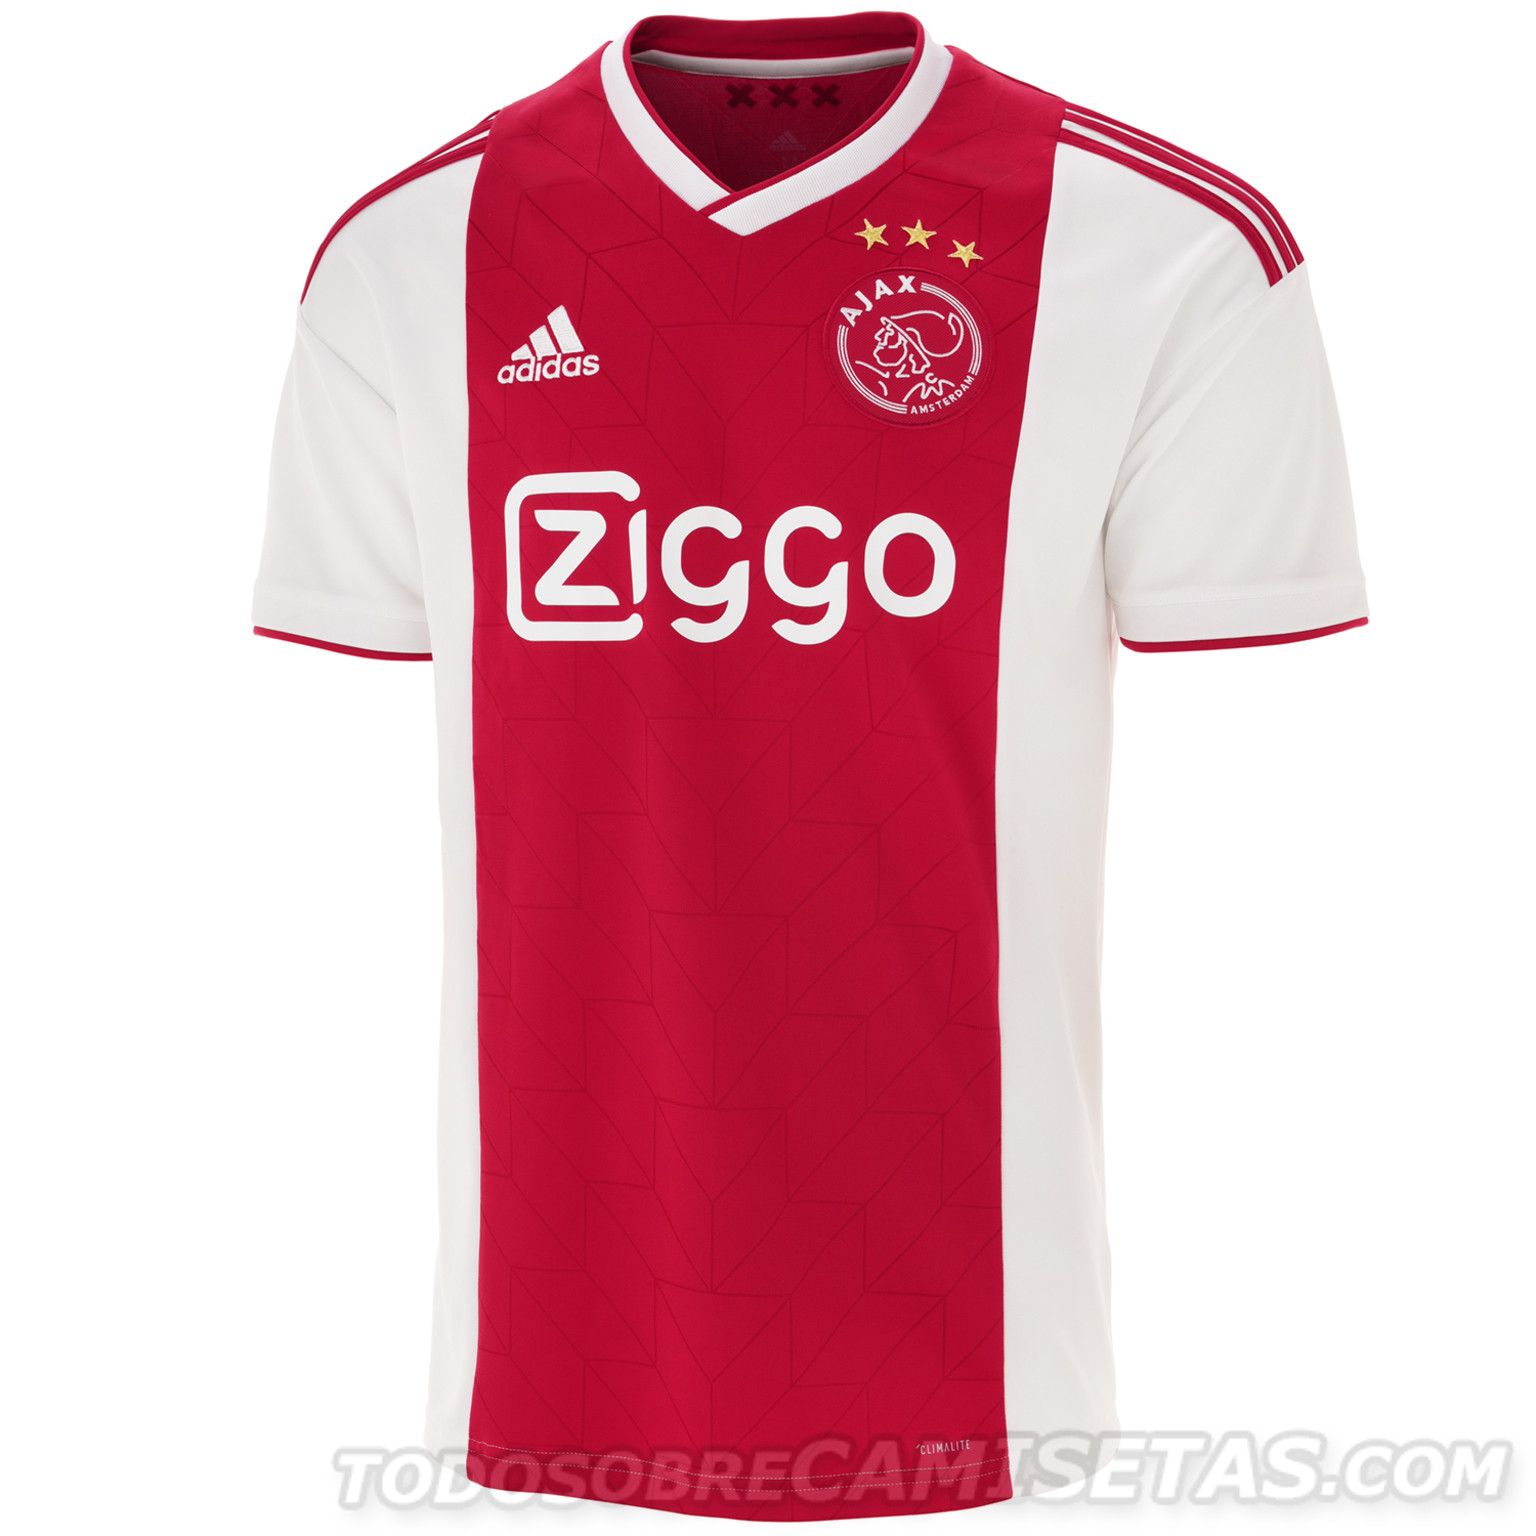 Ajax 2018-19 adidas Home Kit  8f5b6d49e5142